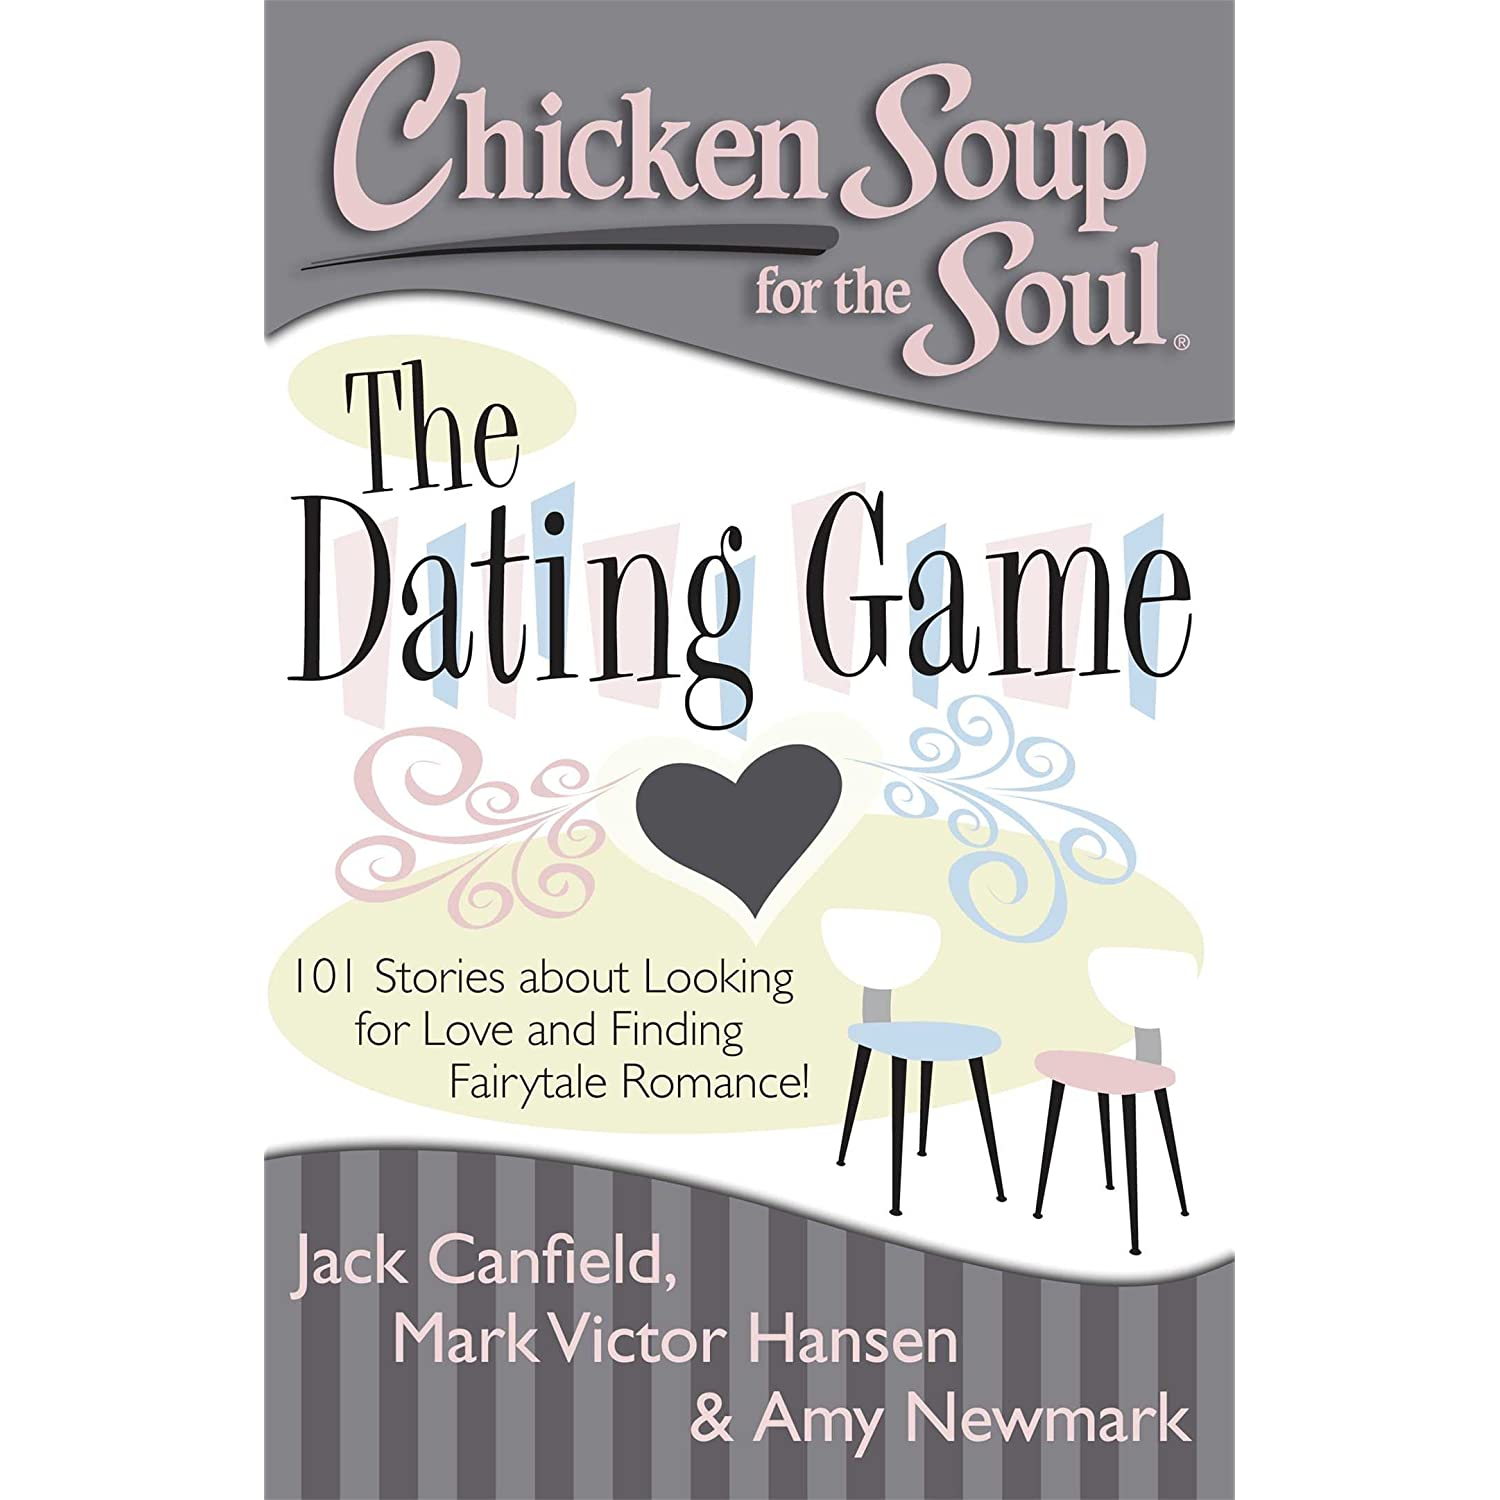 Chicken soup dating